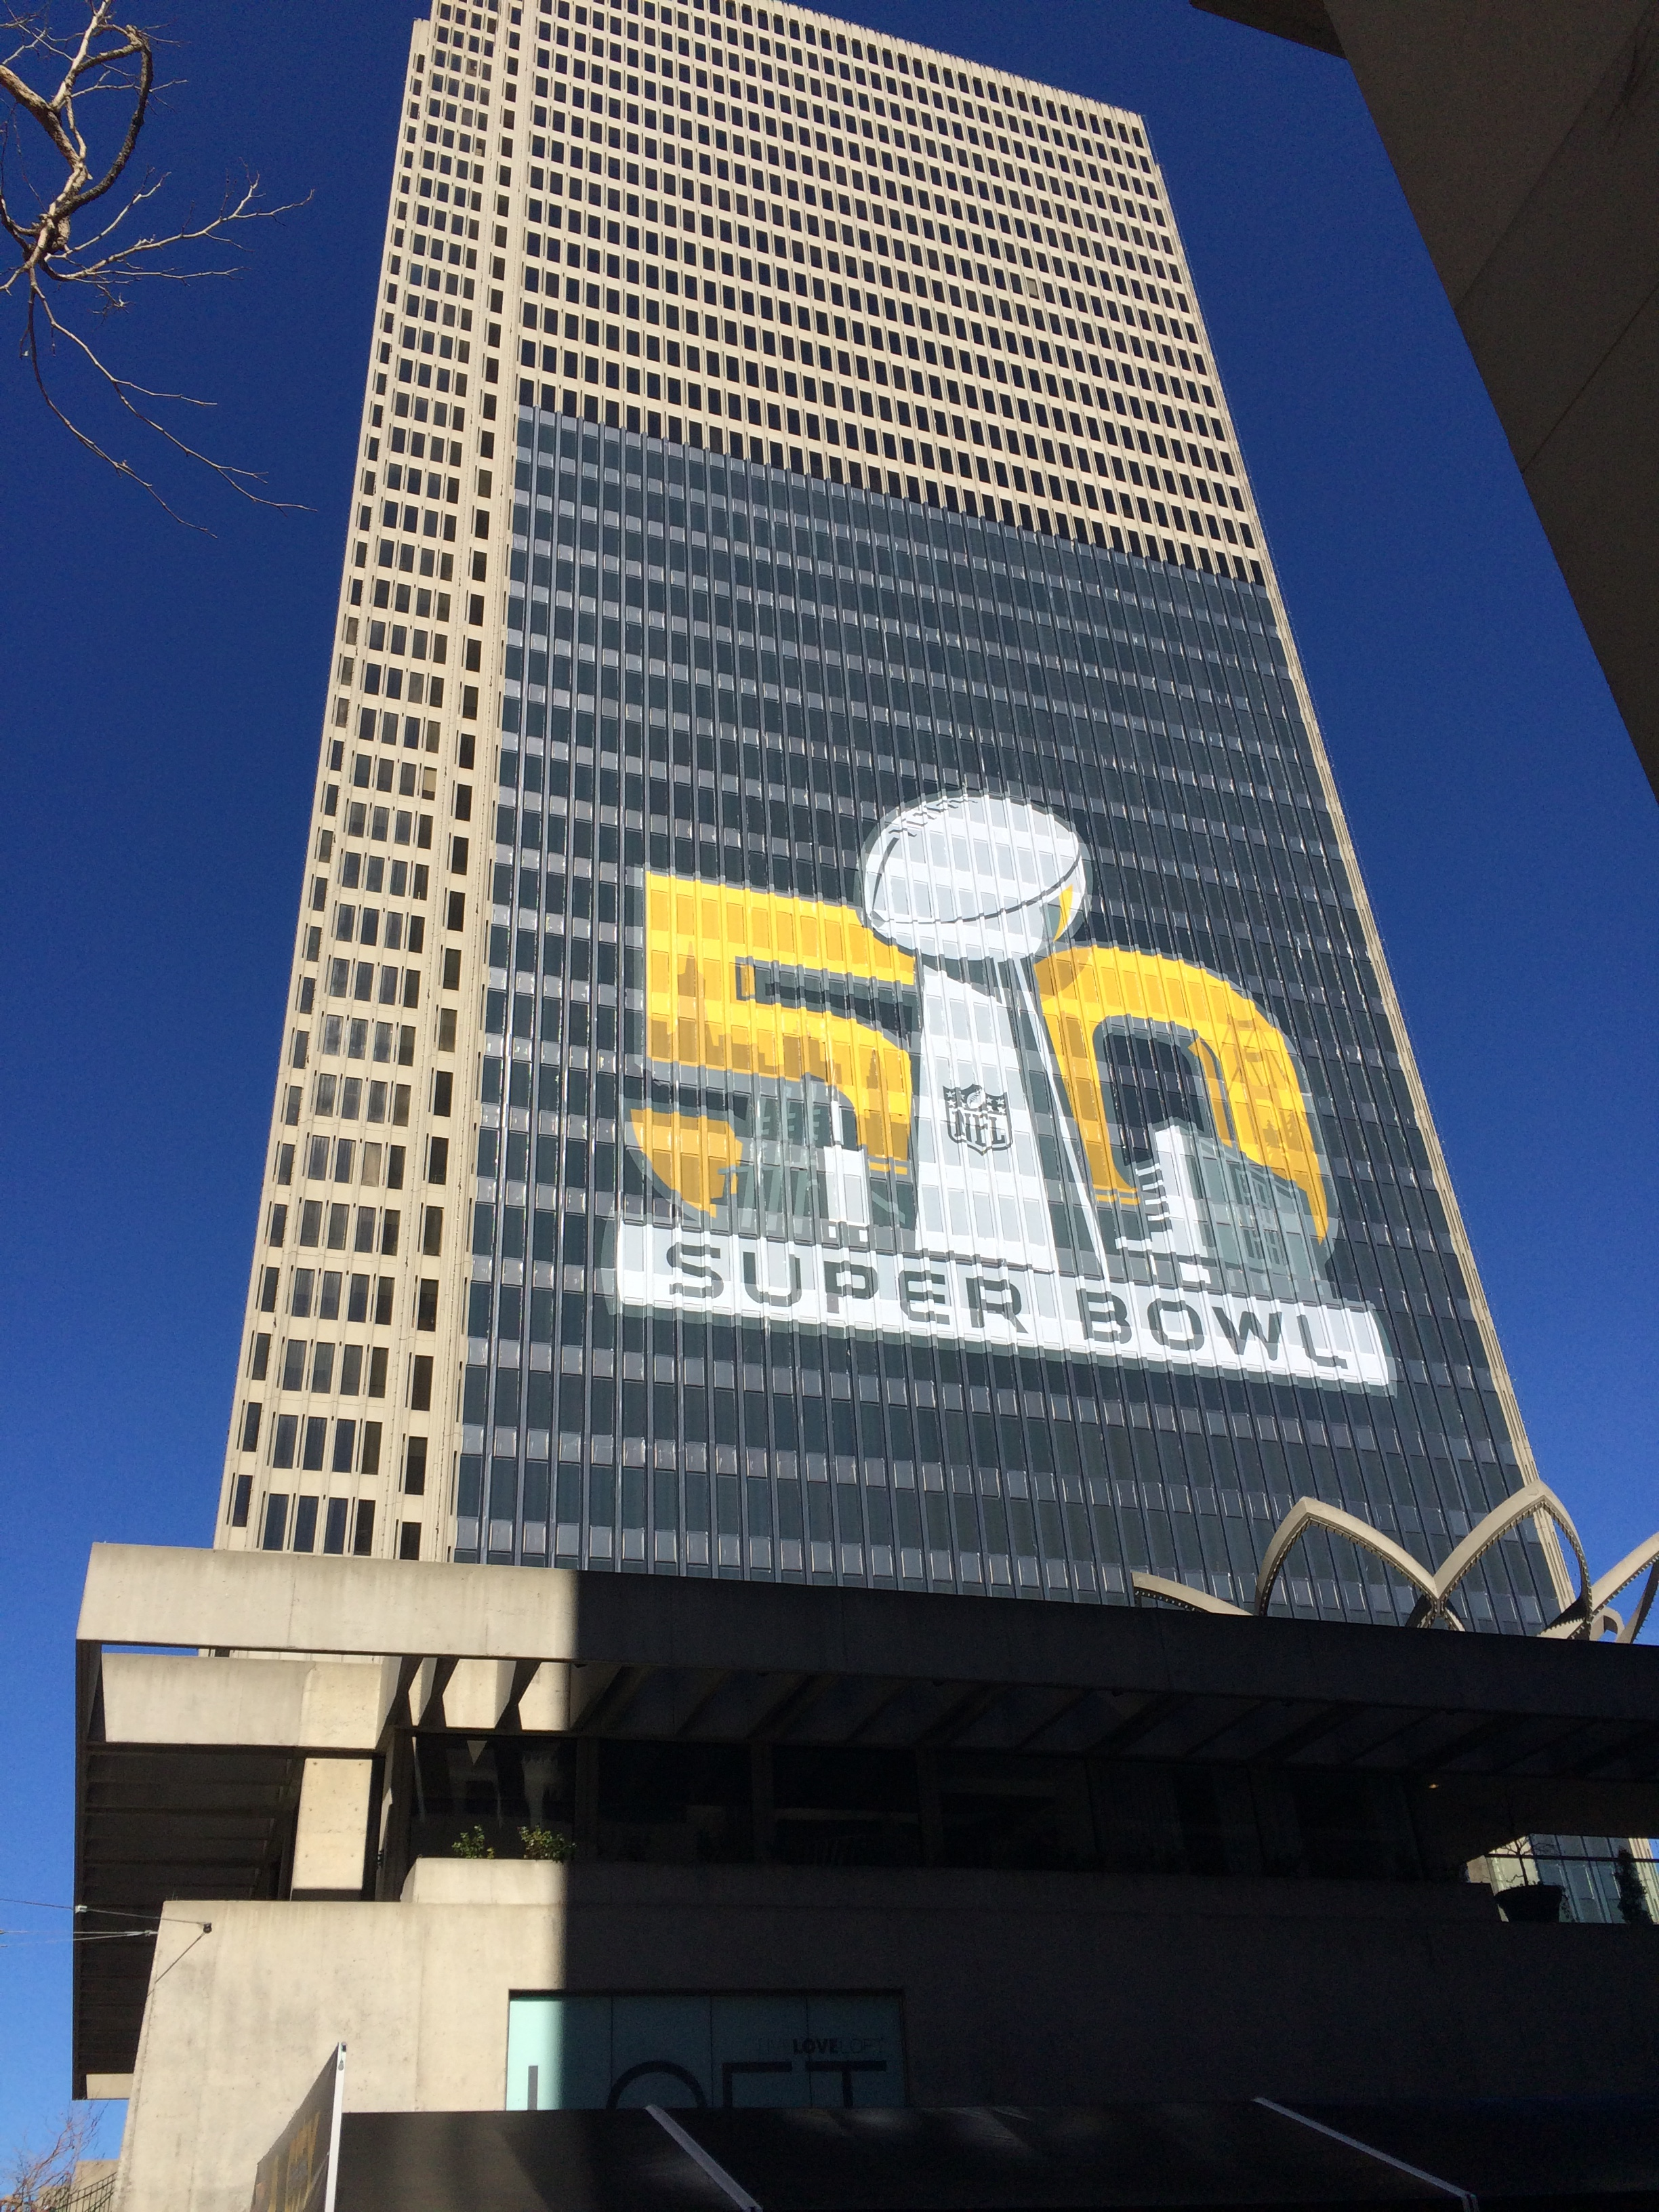 Super Bowl 50 Online Viewing and Network Data Transmission Rates Soared over Prior Super Bowl Records